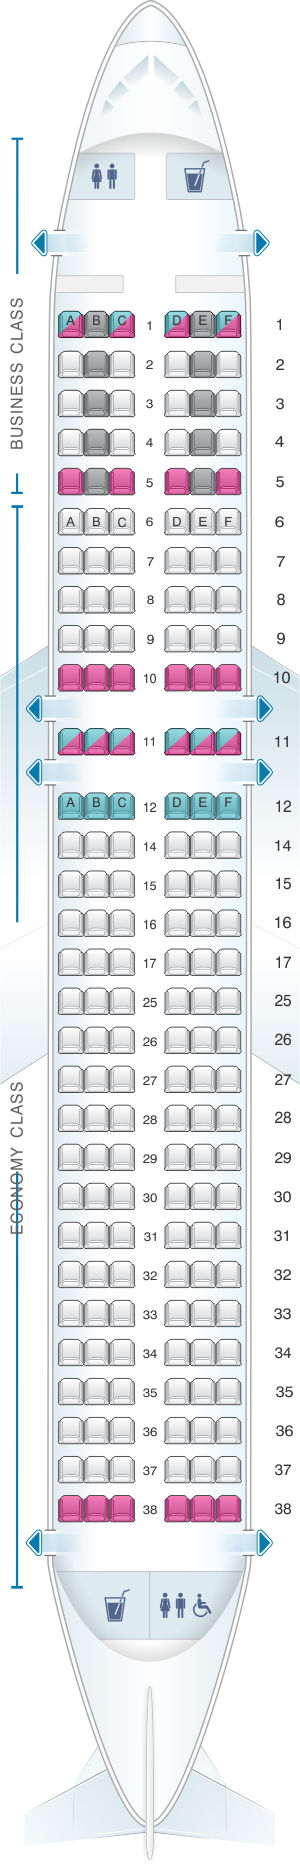 Seat map for SWISS Airbus A320 200